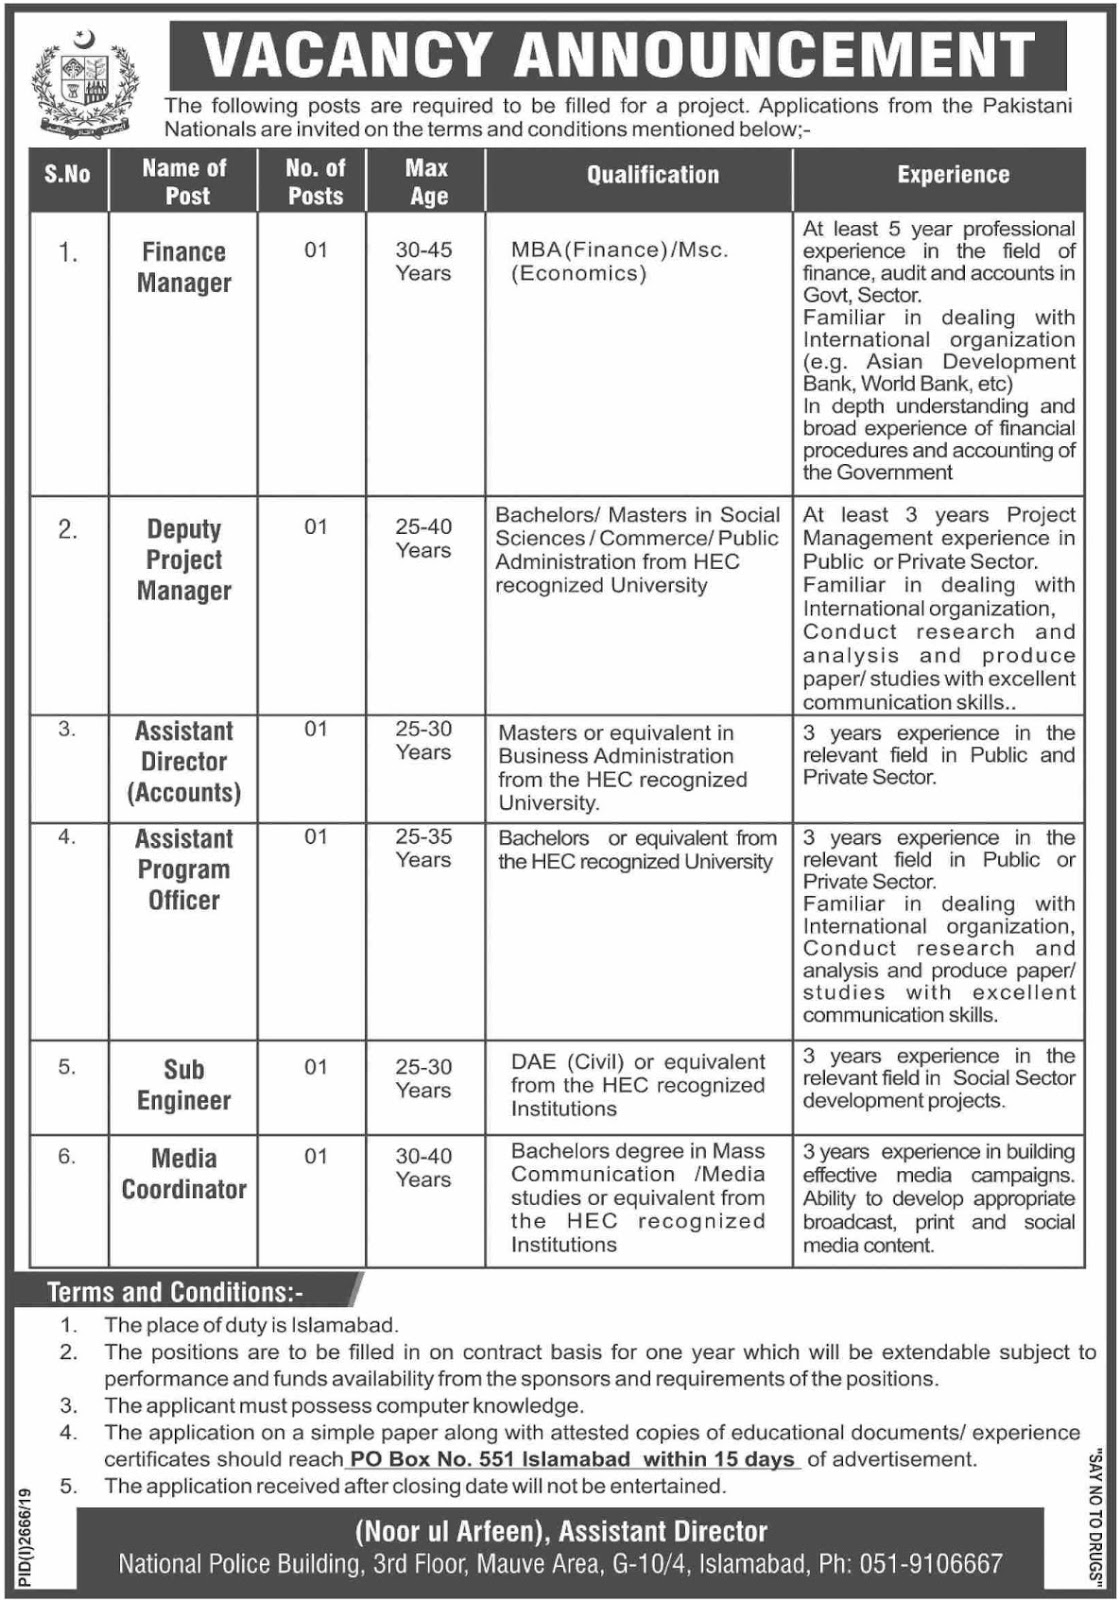 Government Organization Jobs 2019 P.O.Box 551 Islamabad Latest